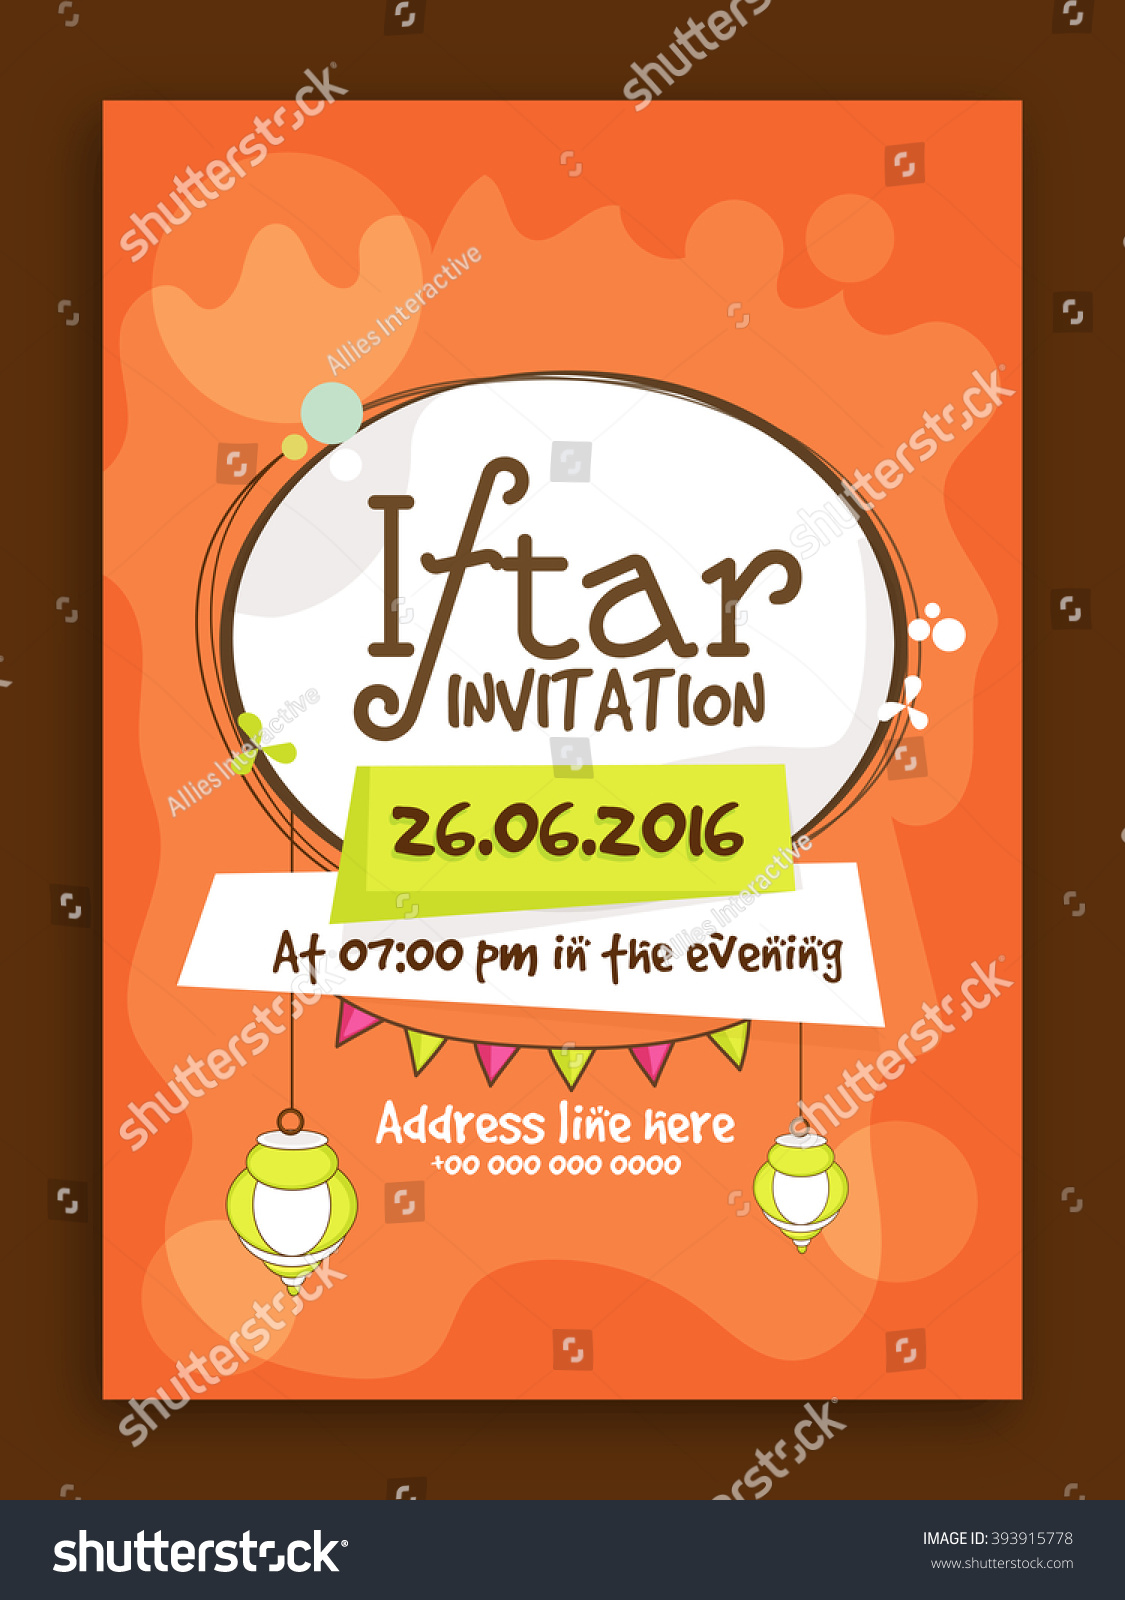 Creative invitation card design date time stock vector 393915778 creative invitation card design with date and time details for ramadan kareem iftar party celebration stopboris Gallery